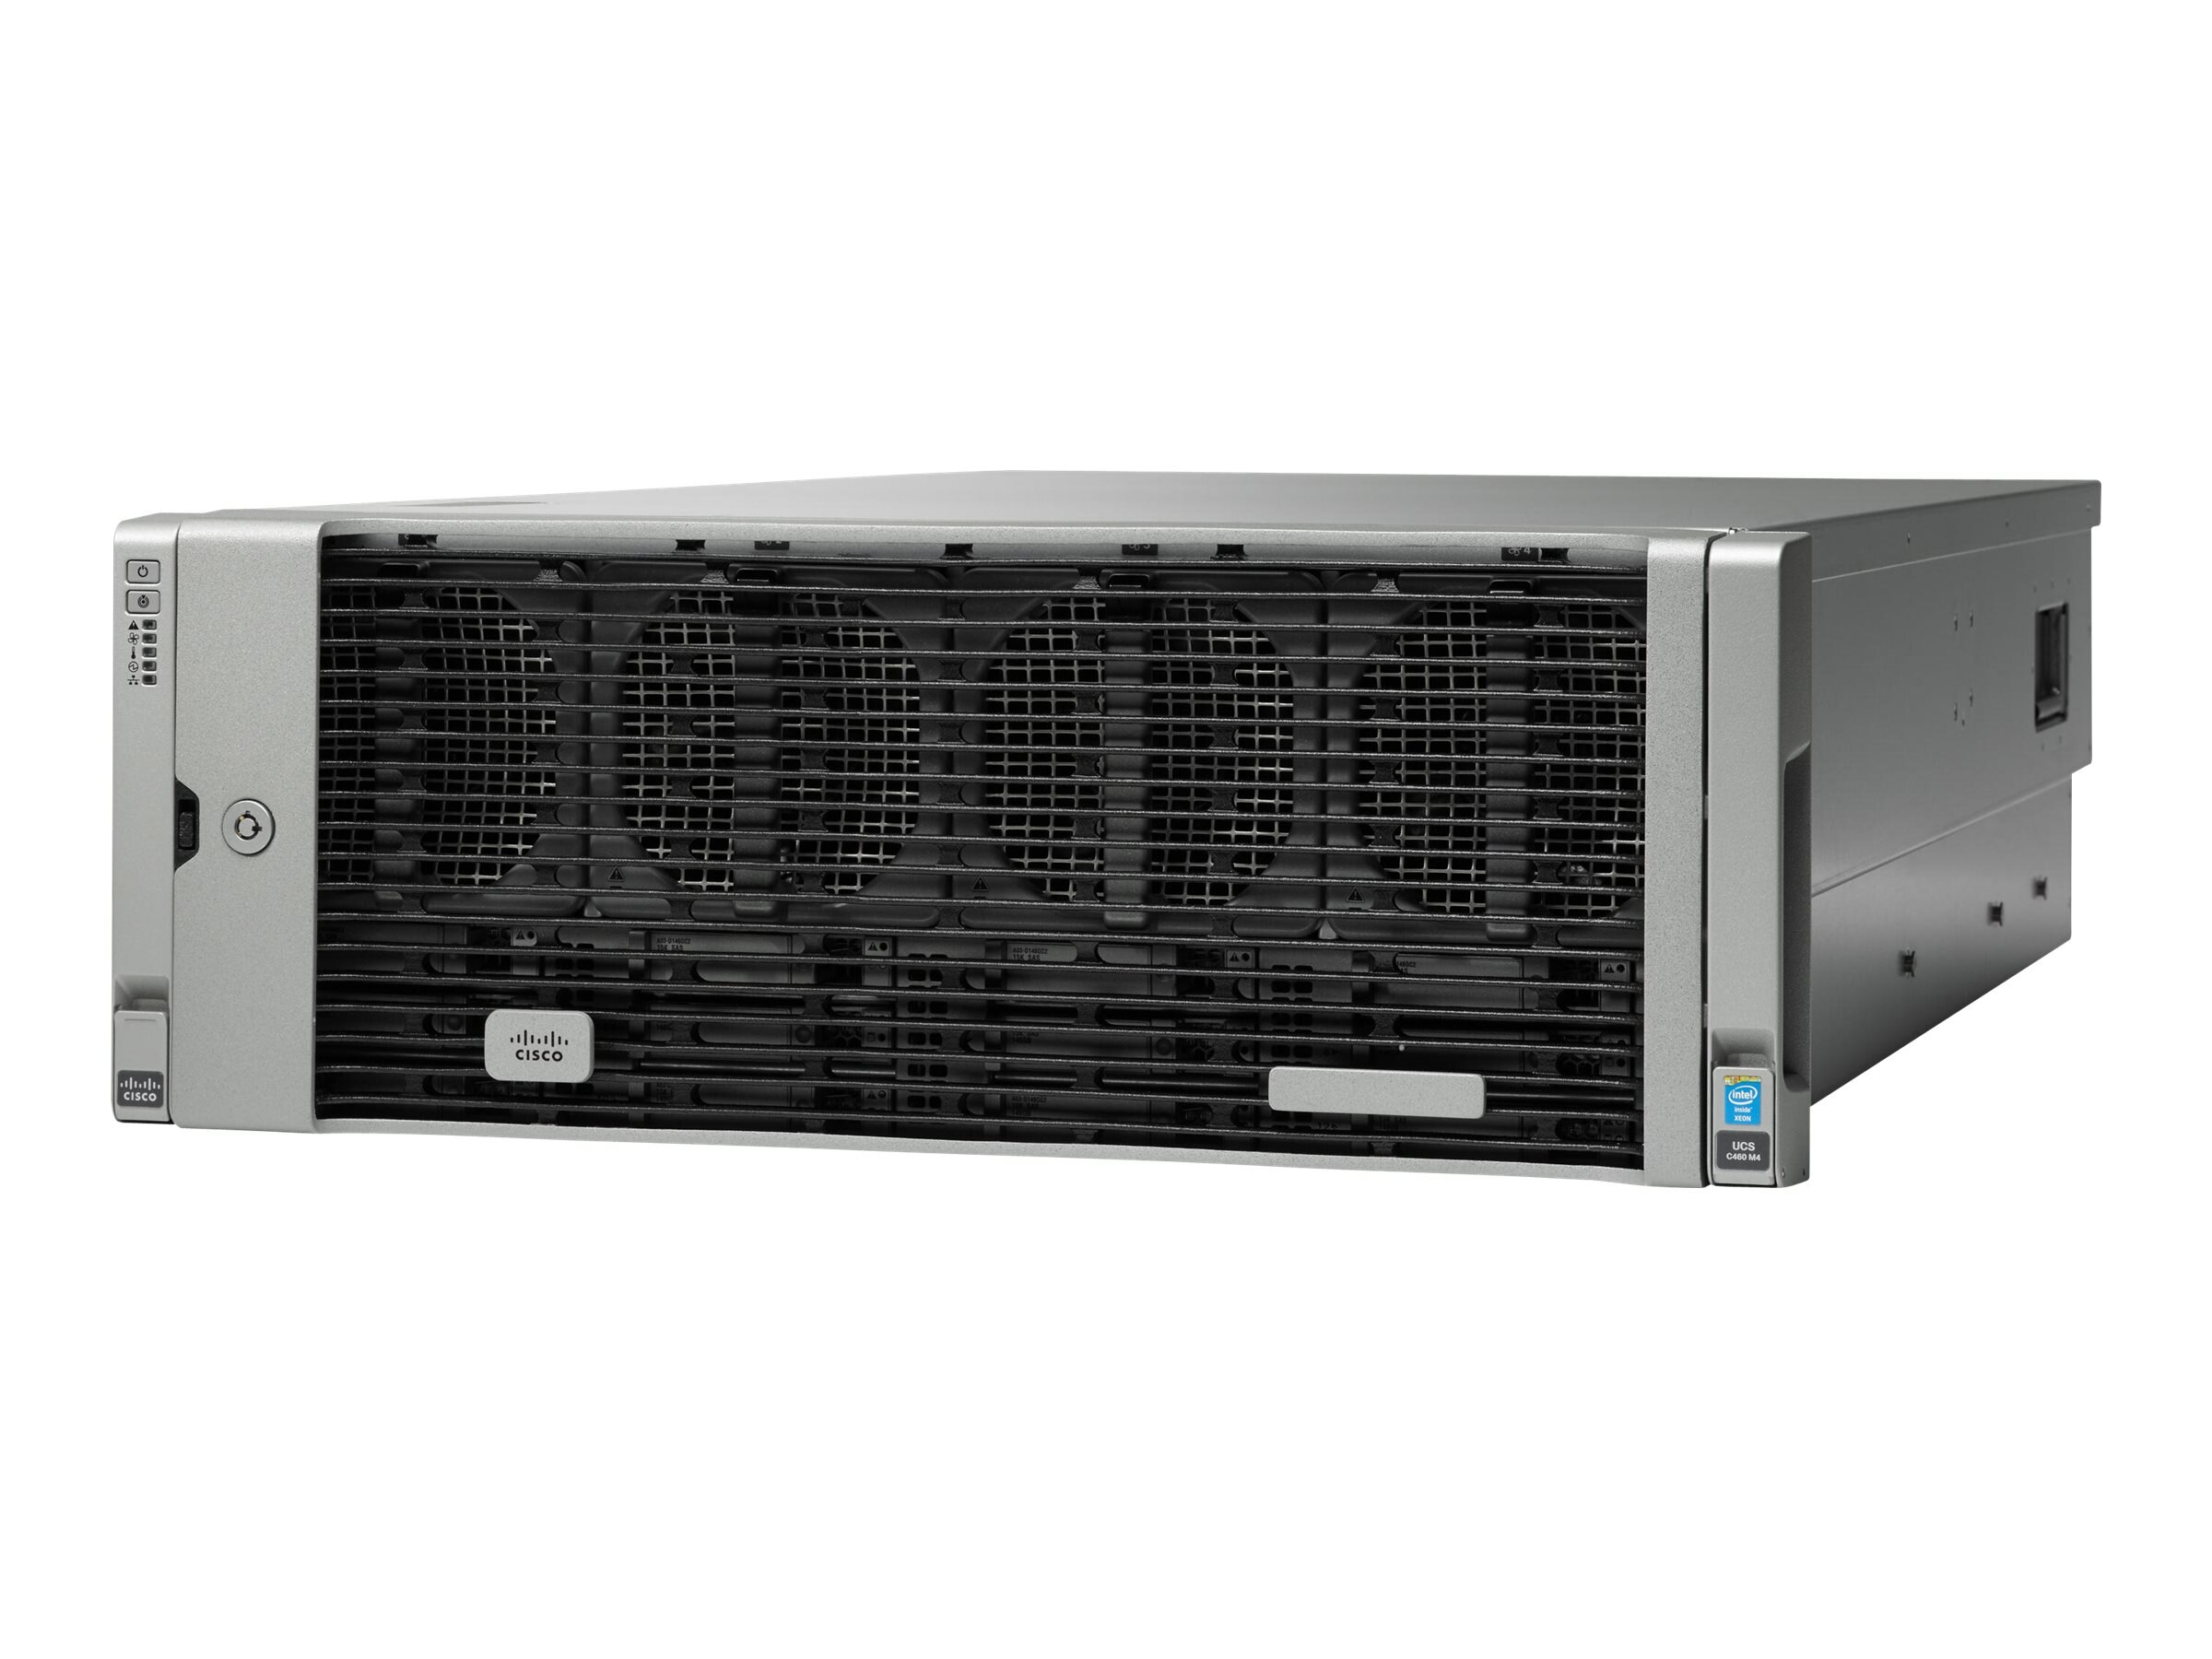 Cisco Barebones, UCS C460 M4 Base with Rails